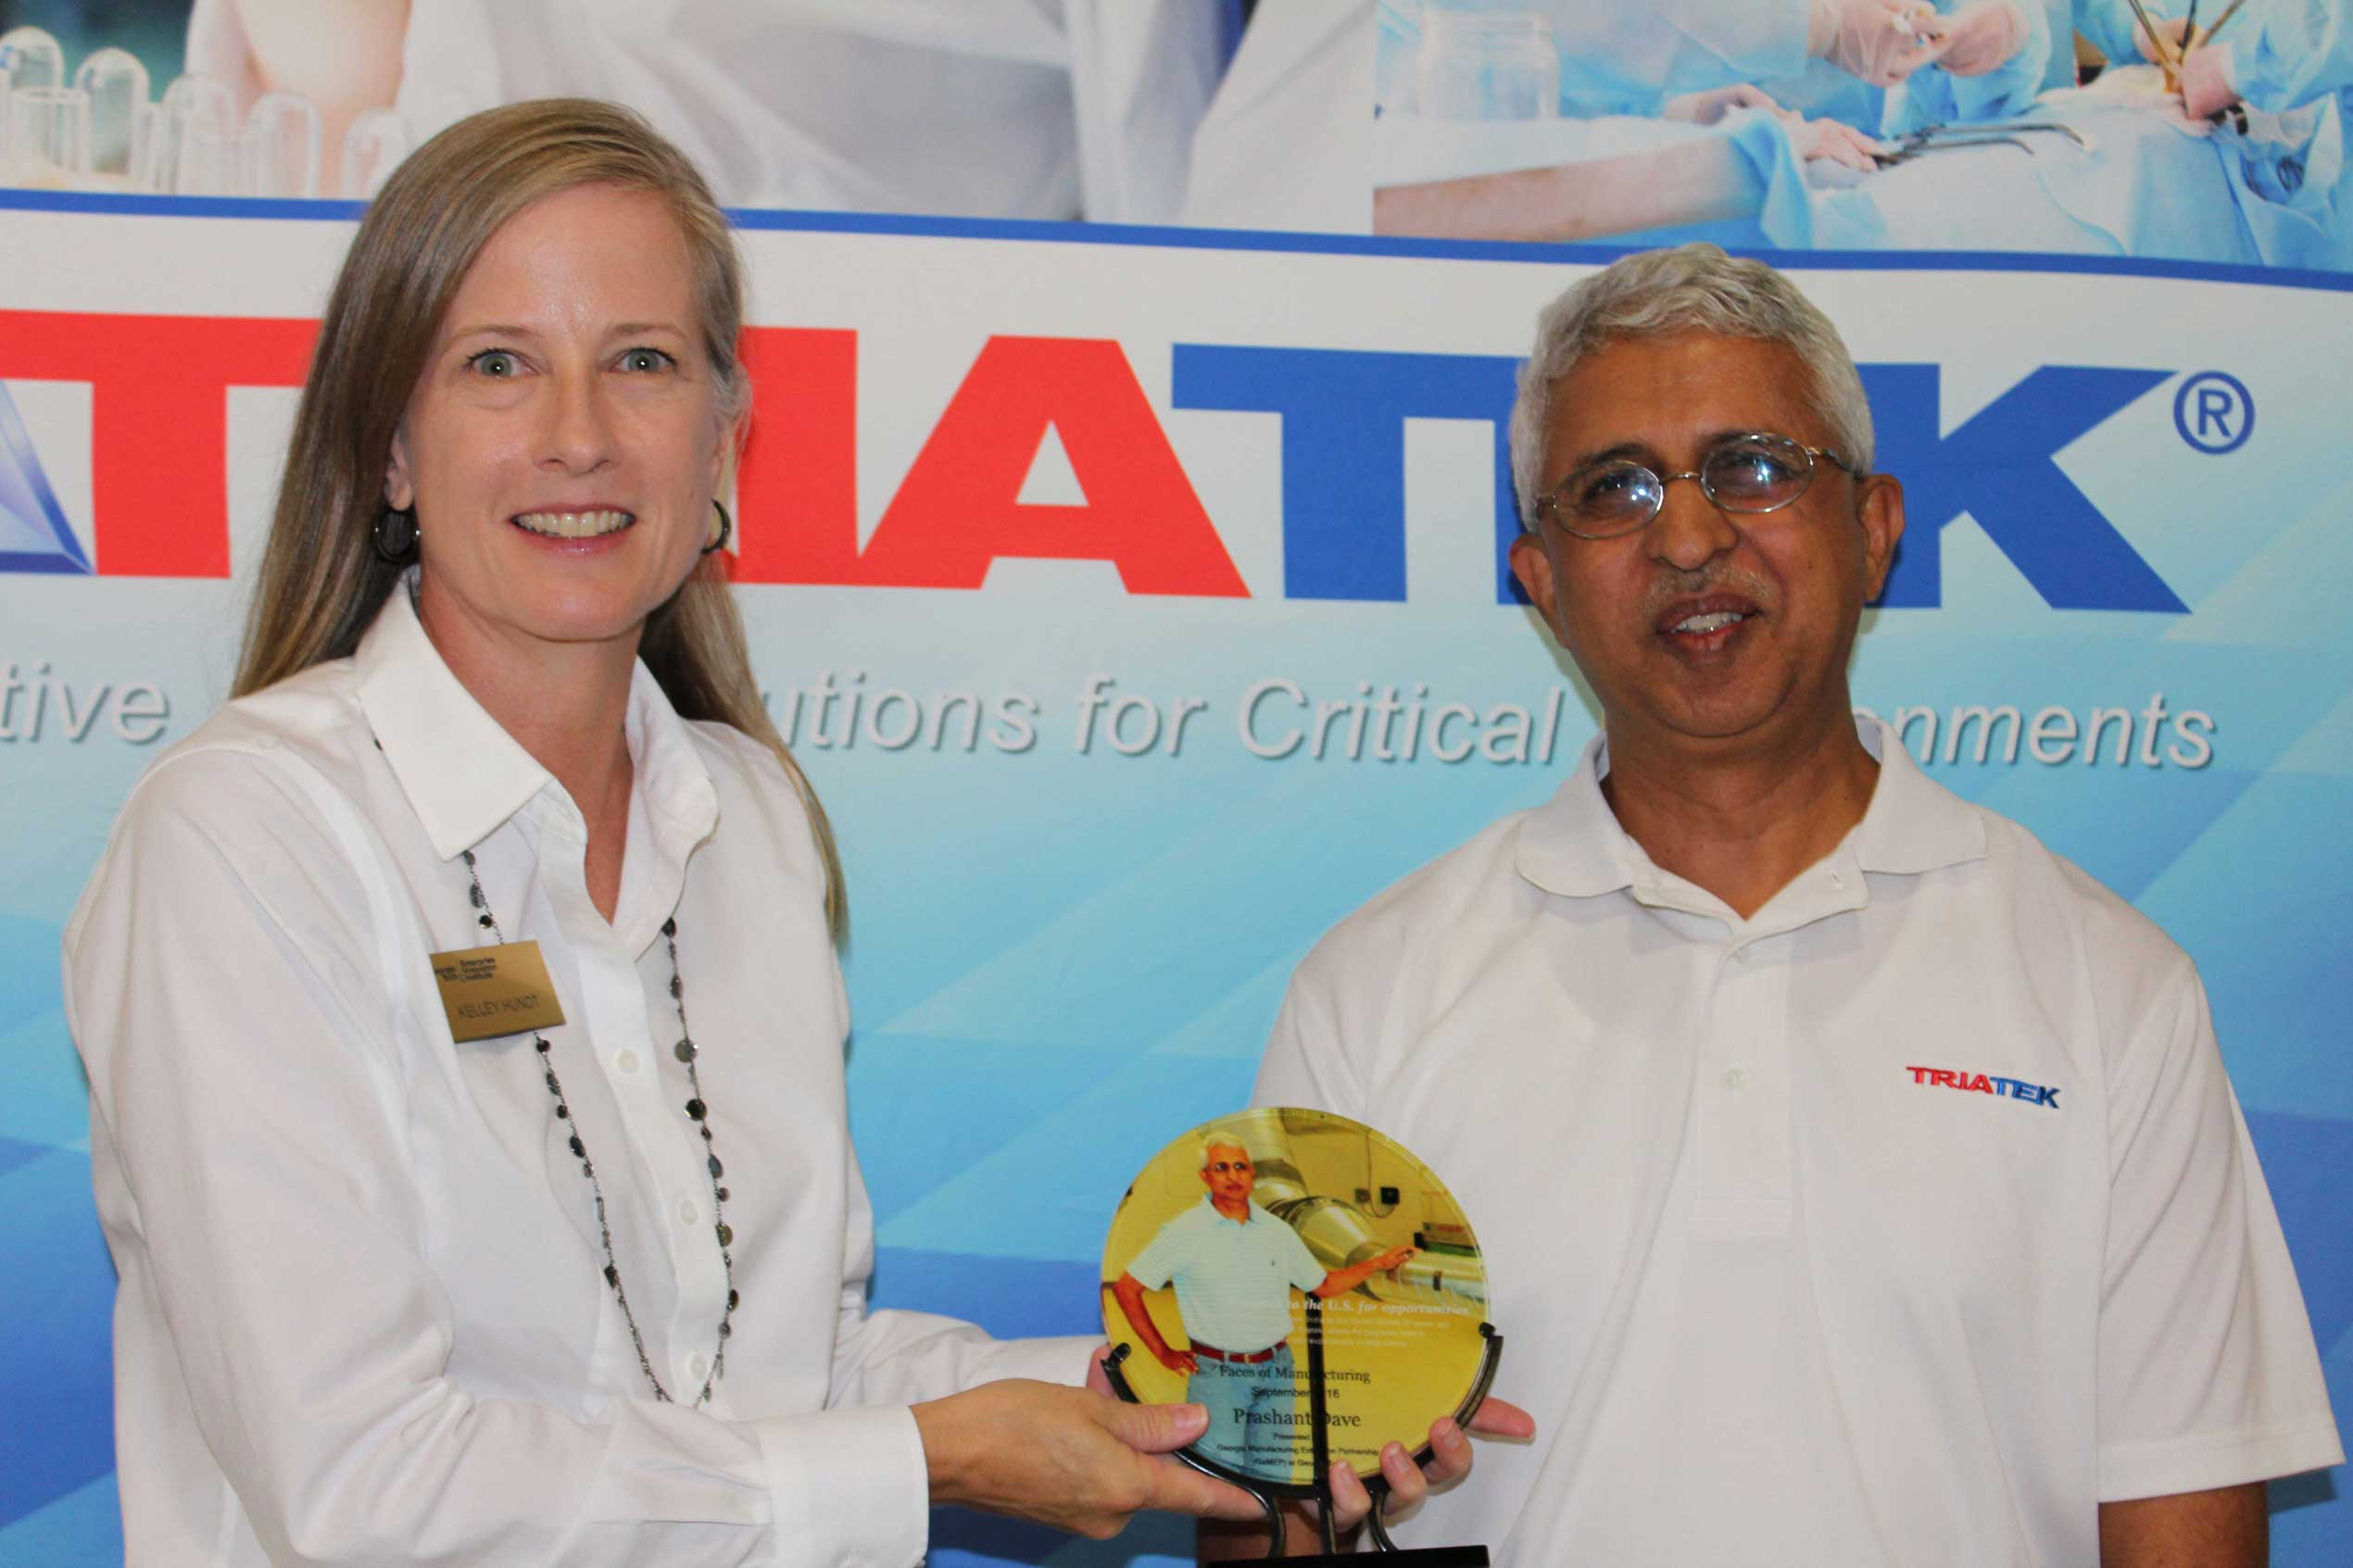 Kelley Hundt (left) of GaMEP presents the Faces of Manufacturing Award to Triatek's Prashant Dave